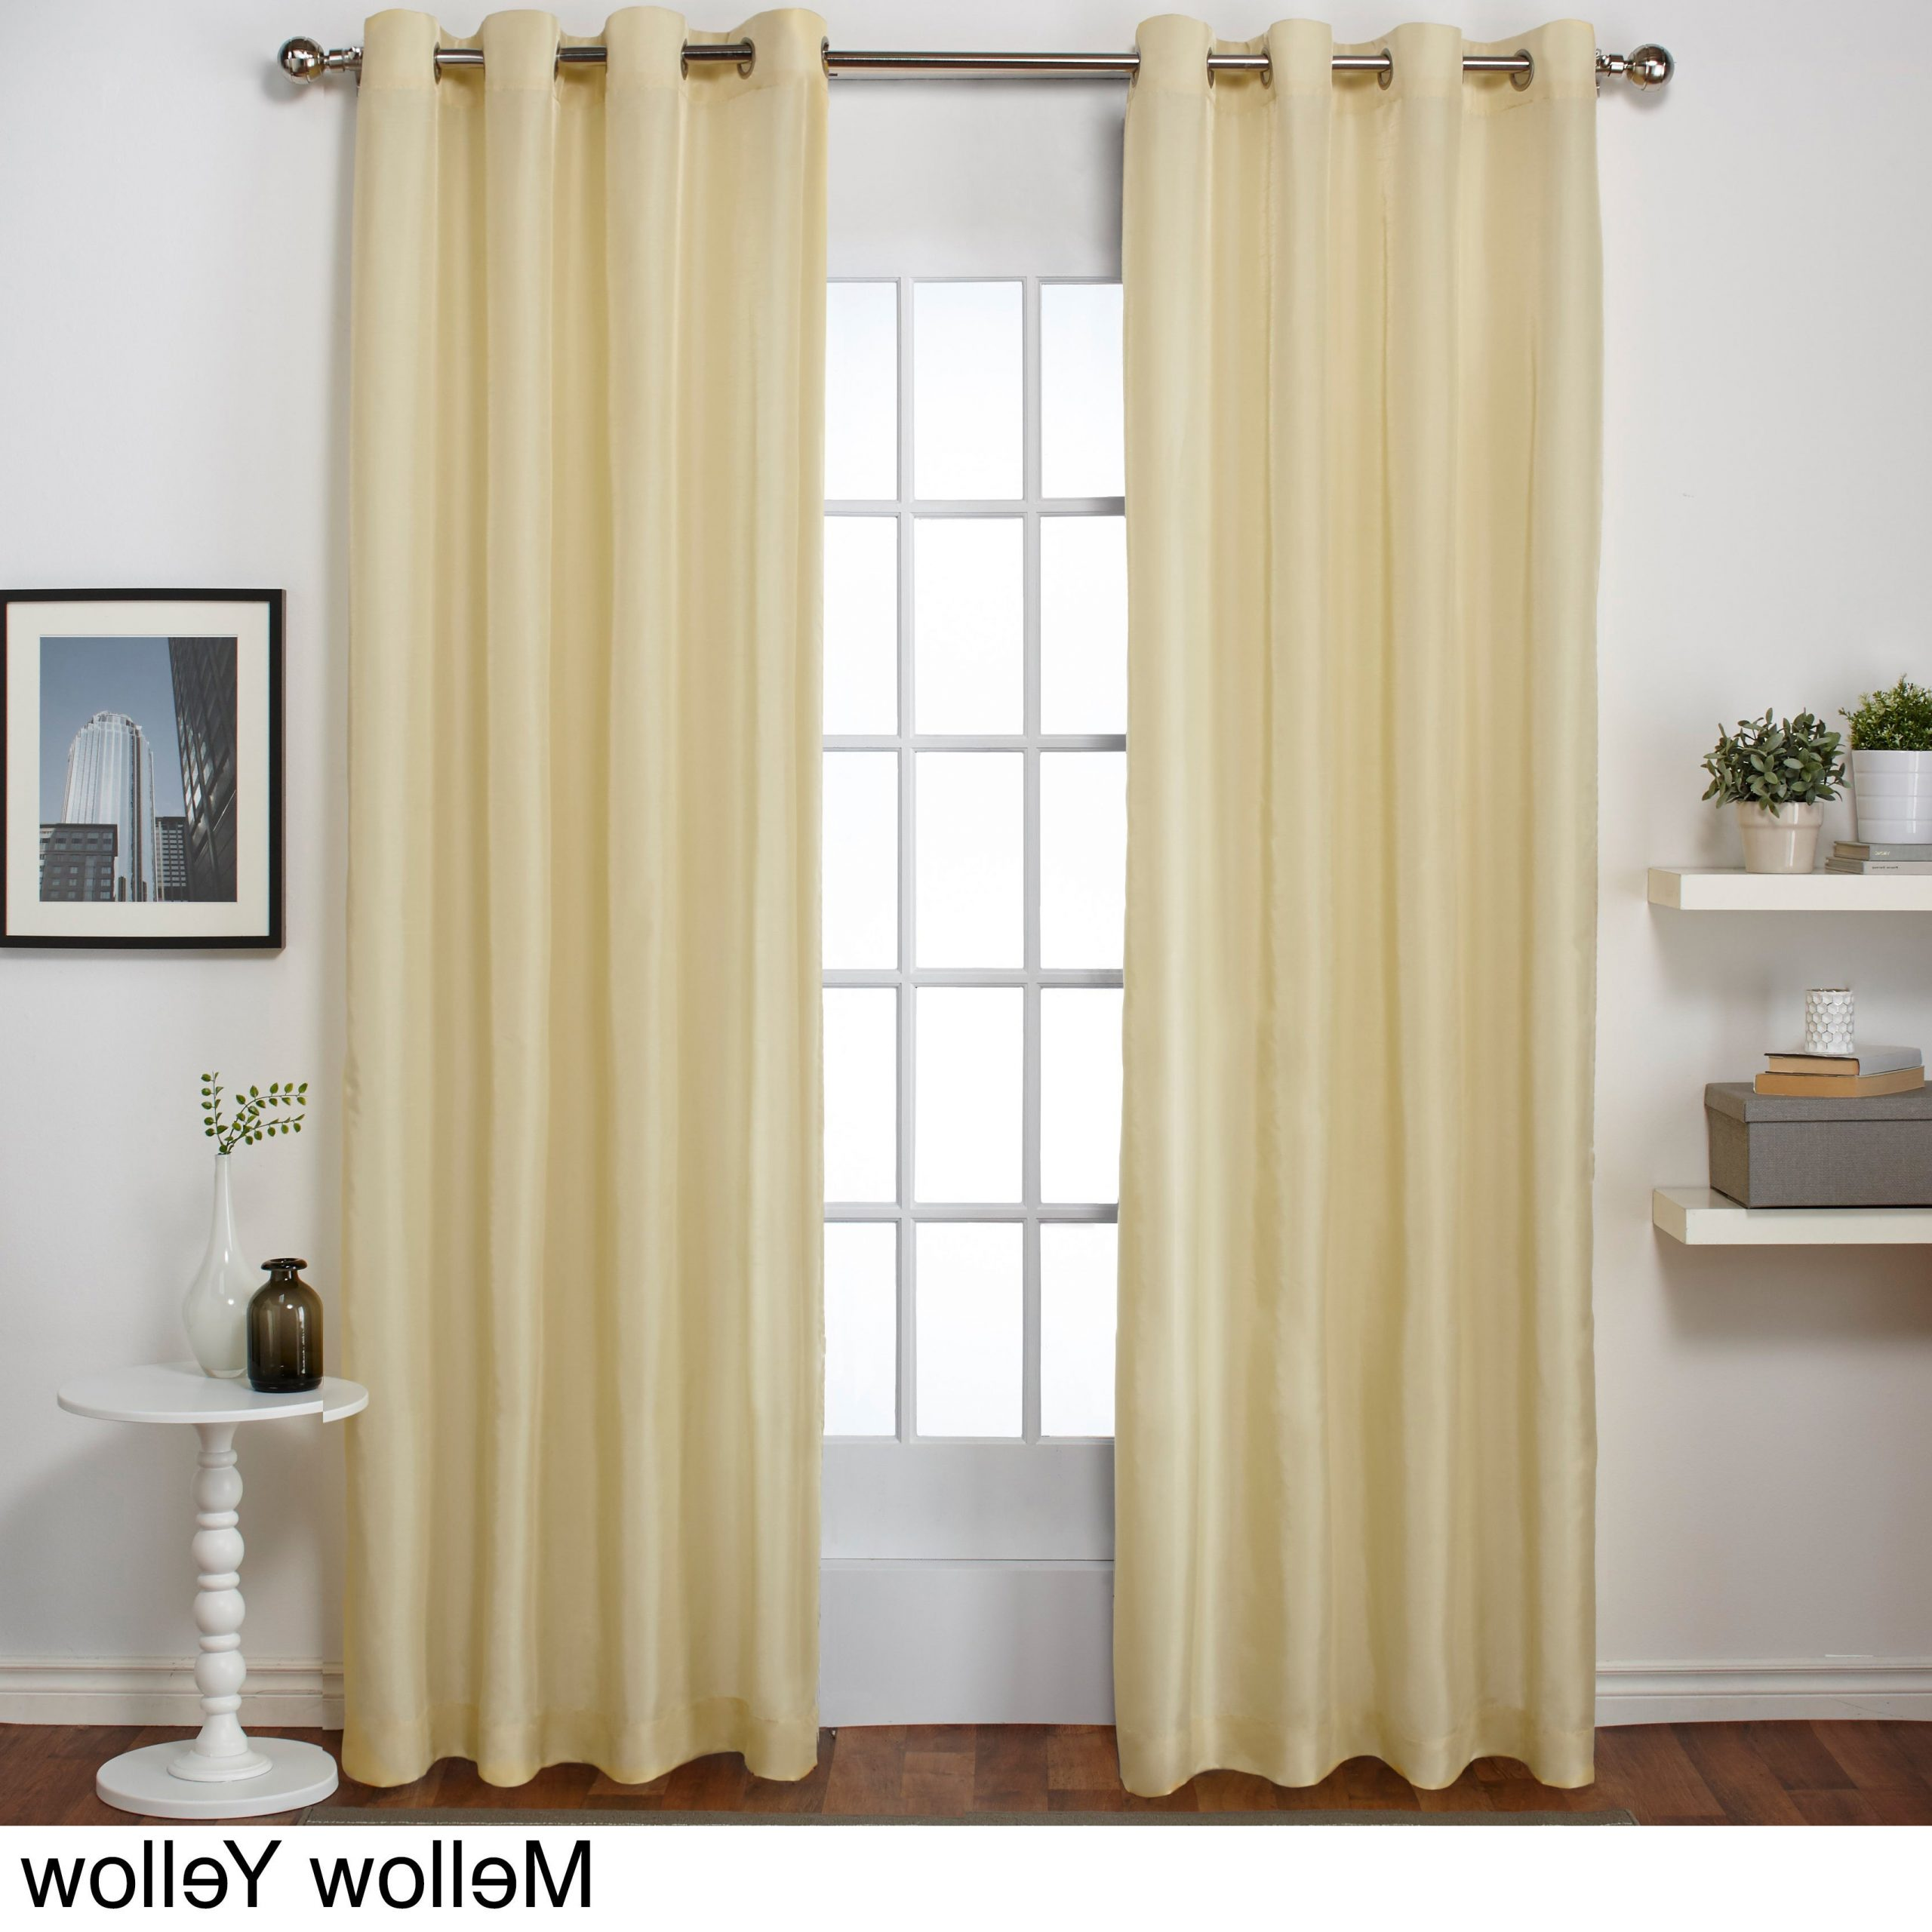 """Well Liked Copper Grove Fulgence Faux Silk Grommet Top Panel Curtains – 96"""" In Teal (as Is Item) In Copper Grove Fulgence Faux Silk Grommet Top Panel Curtains (View 9 of 20)"""